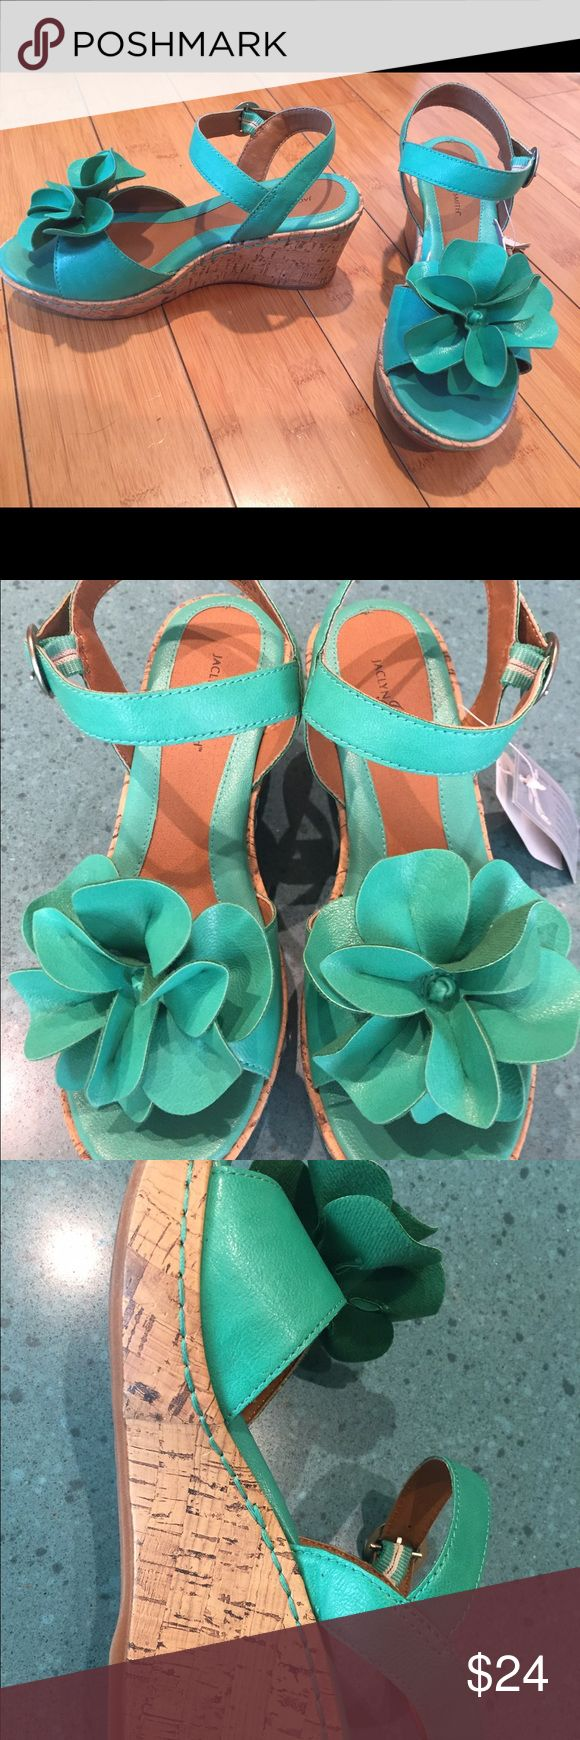 NEW green wedge high heeled sandal NEW!!! Gorgeous green wedged corked heel shoe with whimsical flower -perfect for soon to bloom springtime! Women's shoe size 6.5. Don't let this one get away at a great price! Jacyln Smith Shoes Heels